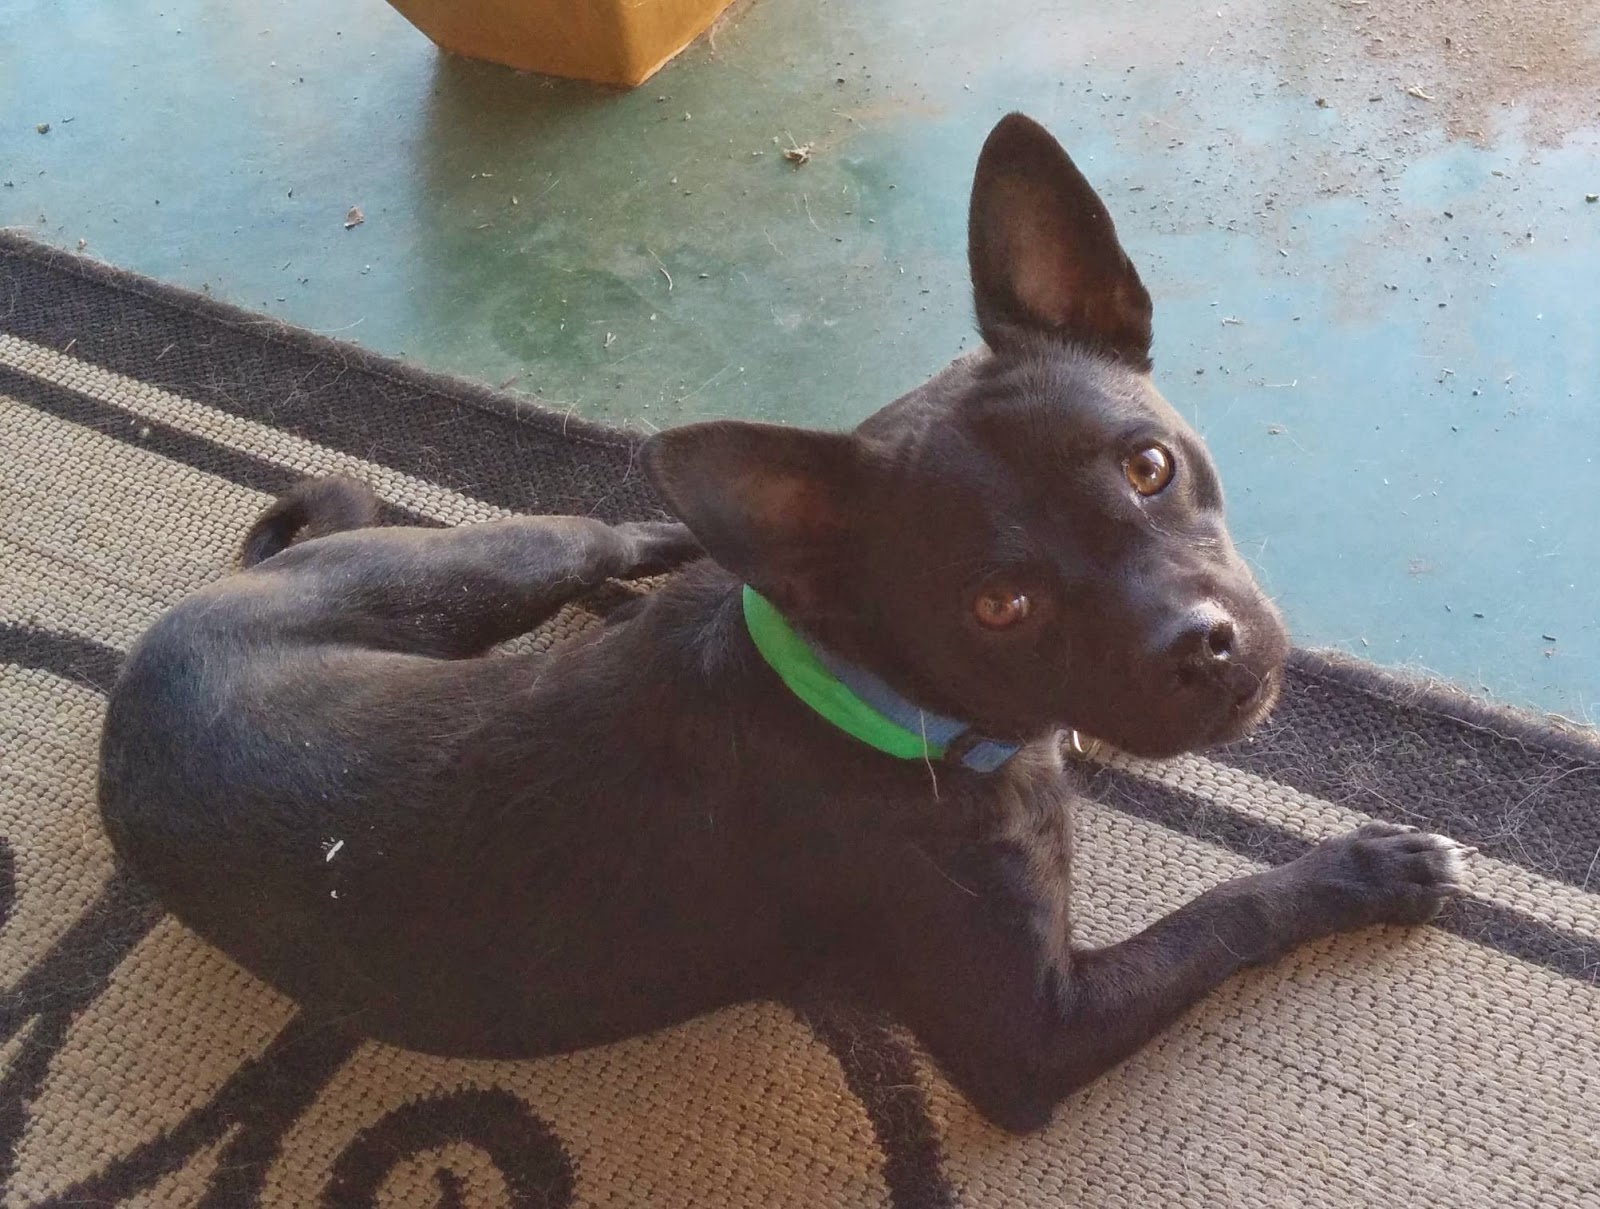 Black dogs are often overlooked at animal shelters and rescues